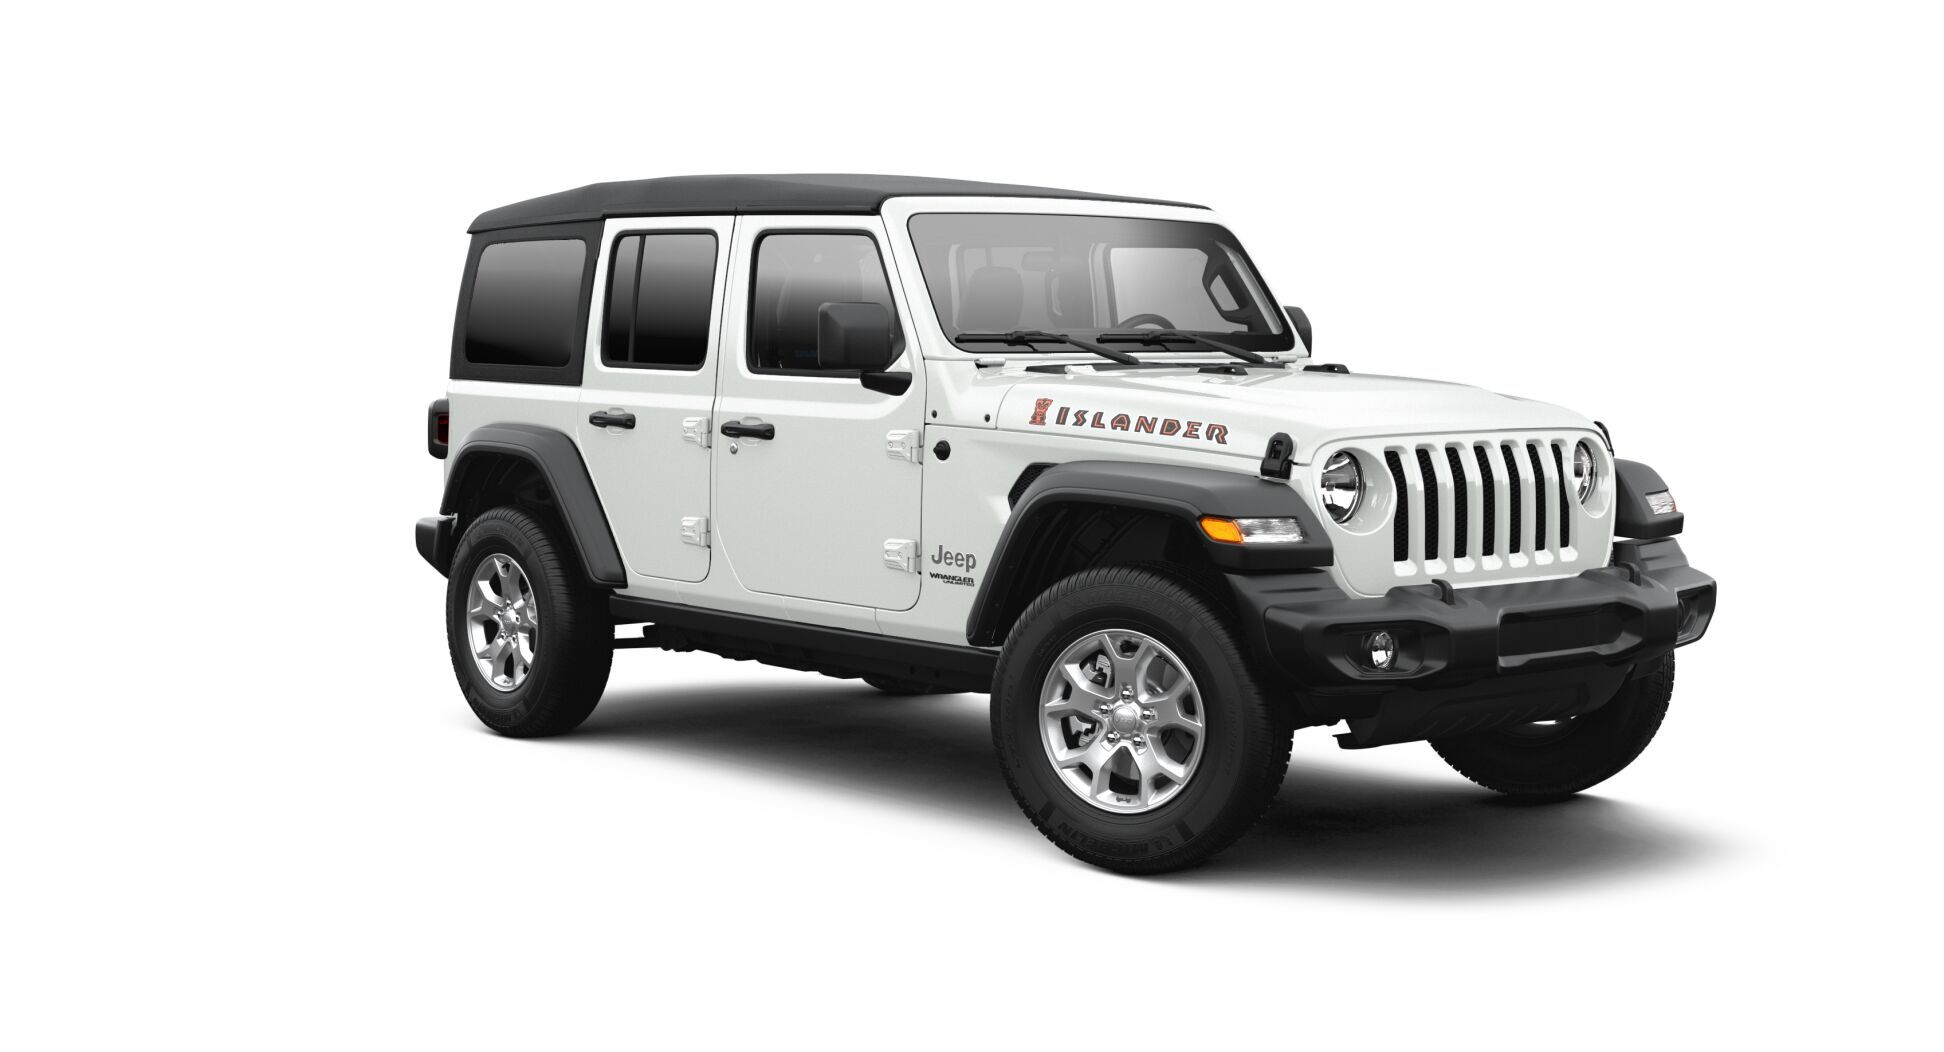 2021 Jeep Wrangler Unlimited Islander